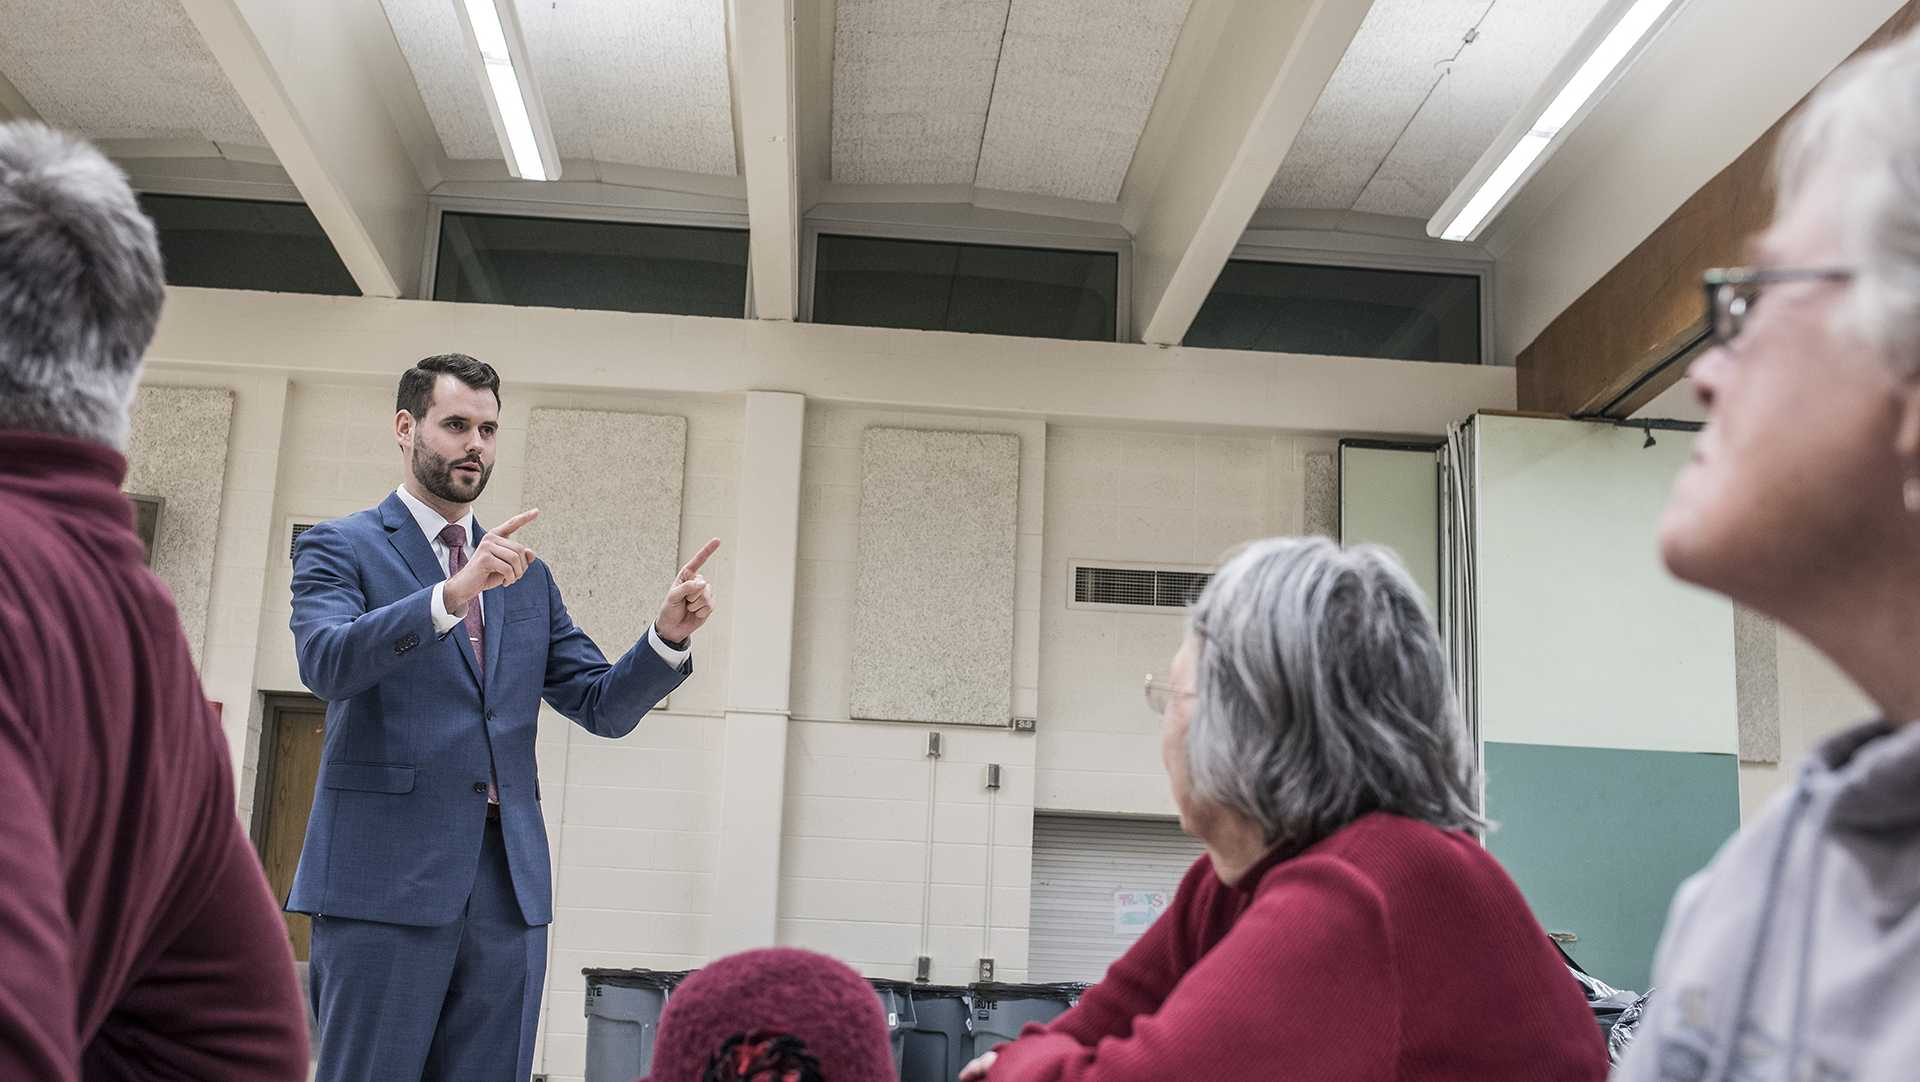 Candidate for the Iowa State Legislature and UI alum Zach Wahls speaks to Iowa City residents during the off season gubernatorial Democratic caucuses at Iowa City-West High School on Monday, Feb. 5, 2018. Representatives for candidates such as Fred Hubbell, Nate Boulton, John Norris, and Deidre Dejear were in attendance. (Ben Allan Smith/The Daily Iowan)